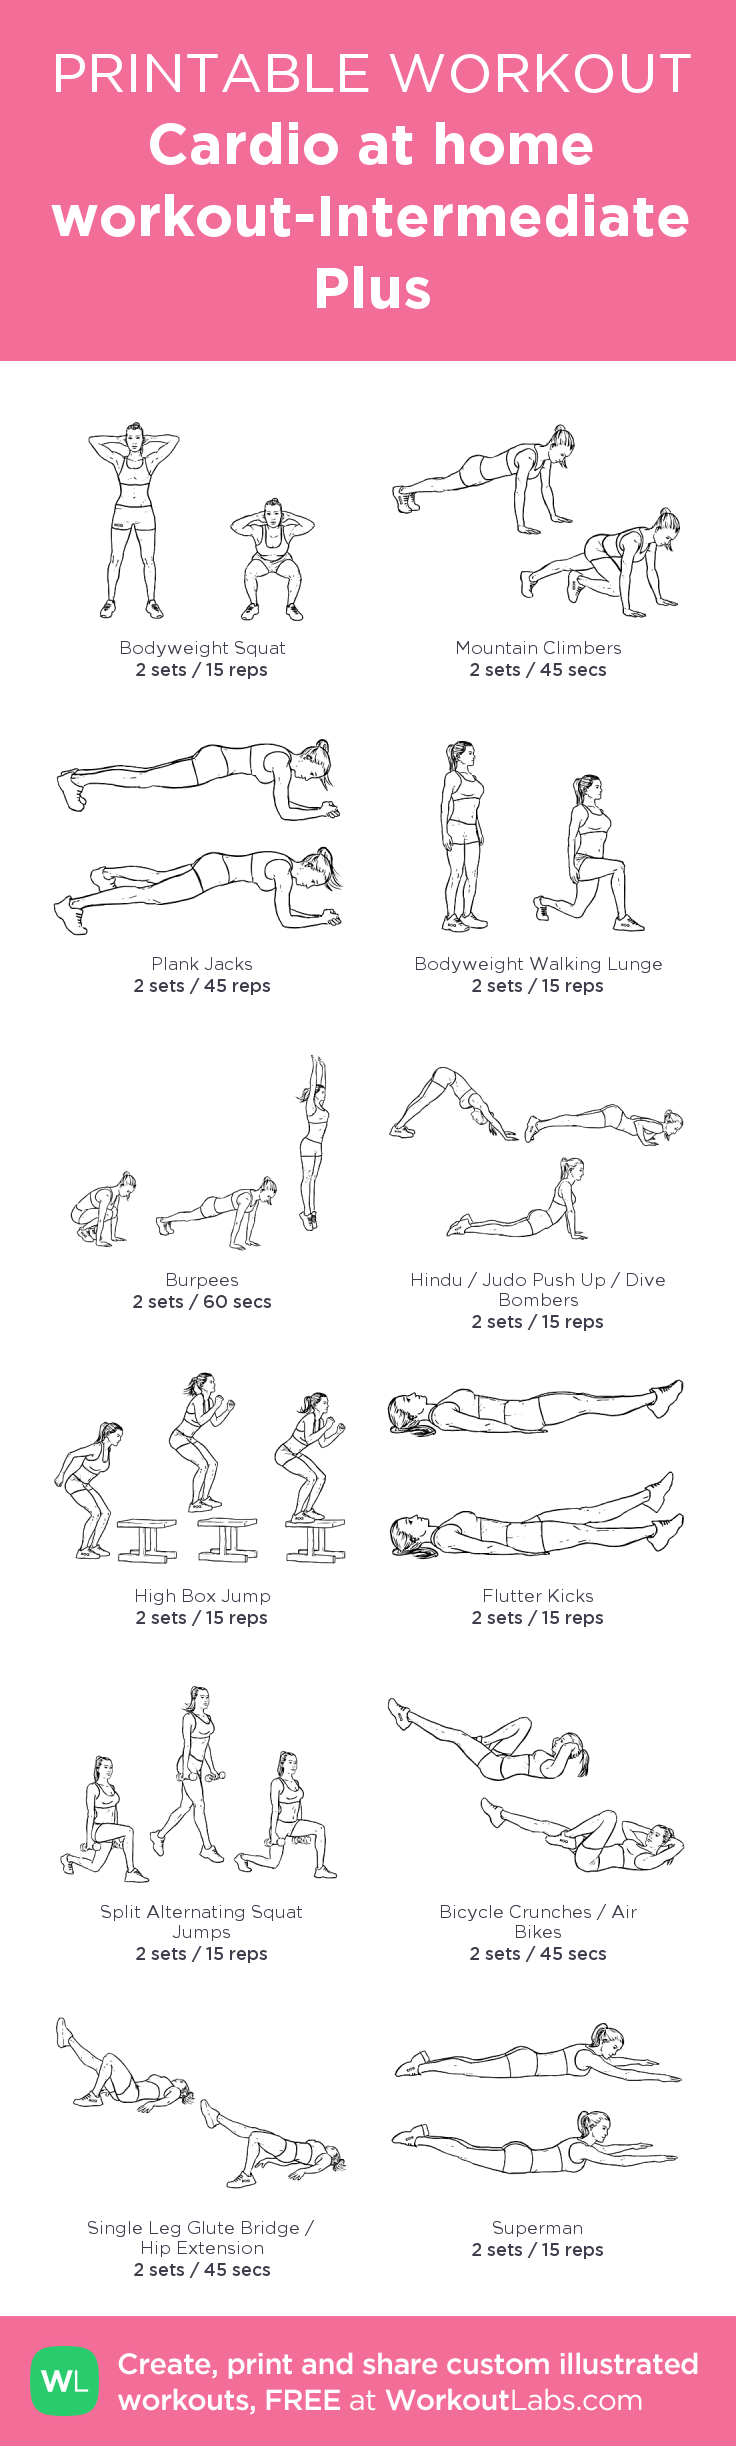 picture about Printable Workouts at Home named Fitness for a Wholesome Centre conditioning Aerobic at household